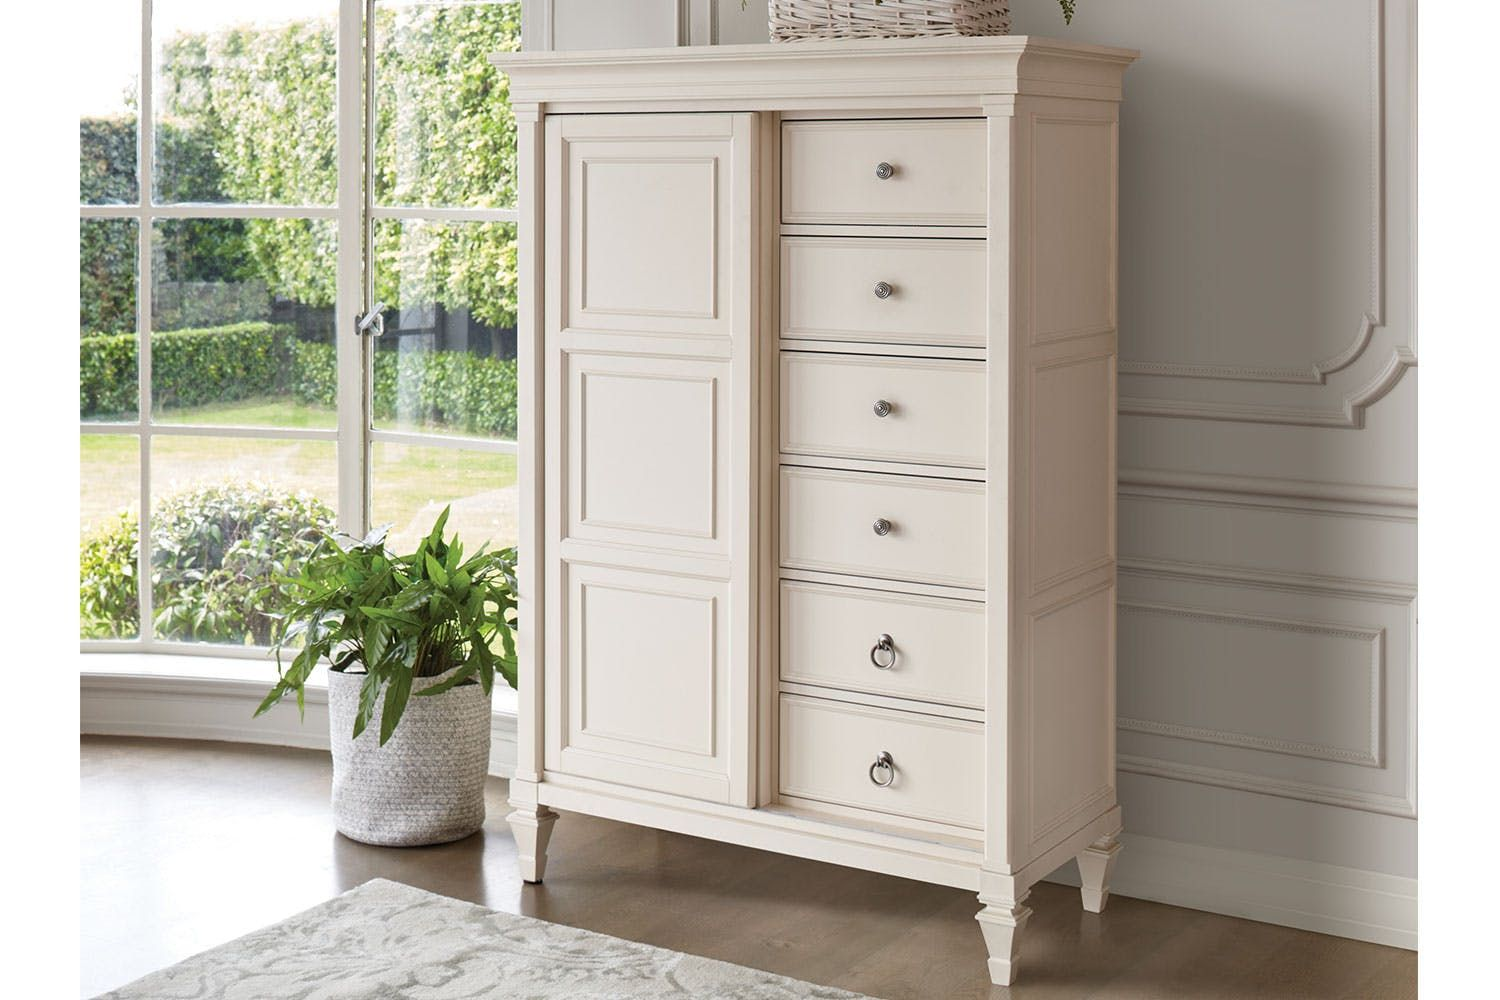 Ashby Chest With Sliding Door By Garry Masters Harvey Norman New Zealand Country Style Bedroom Bedroom Furniture Tall Cabinet Storage